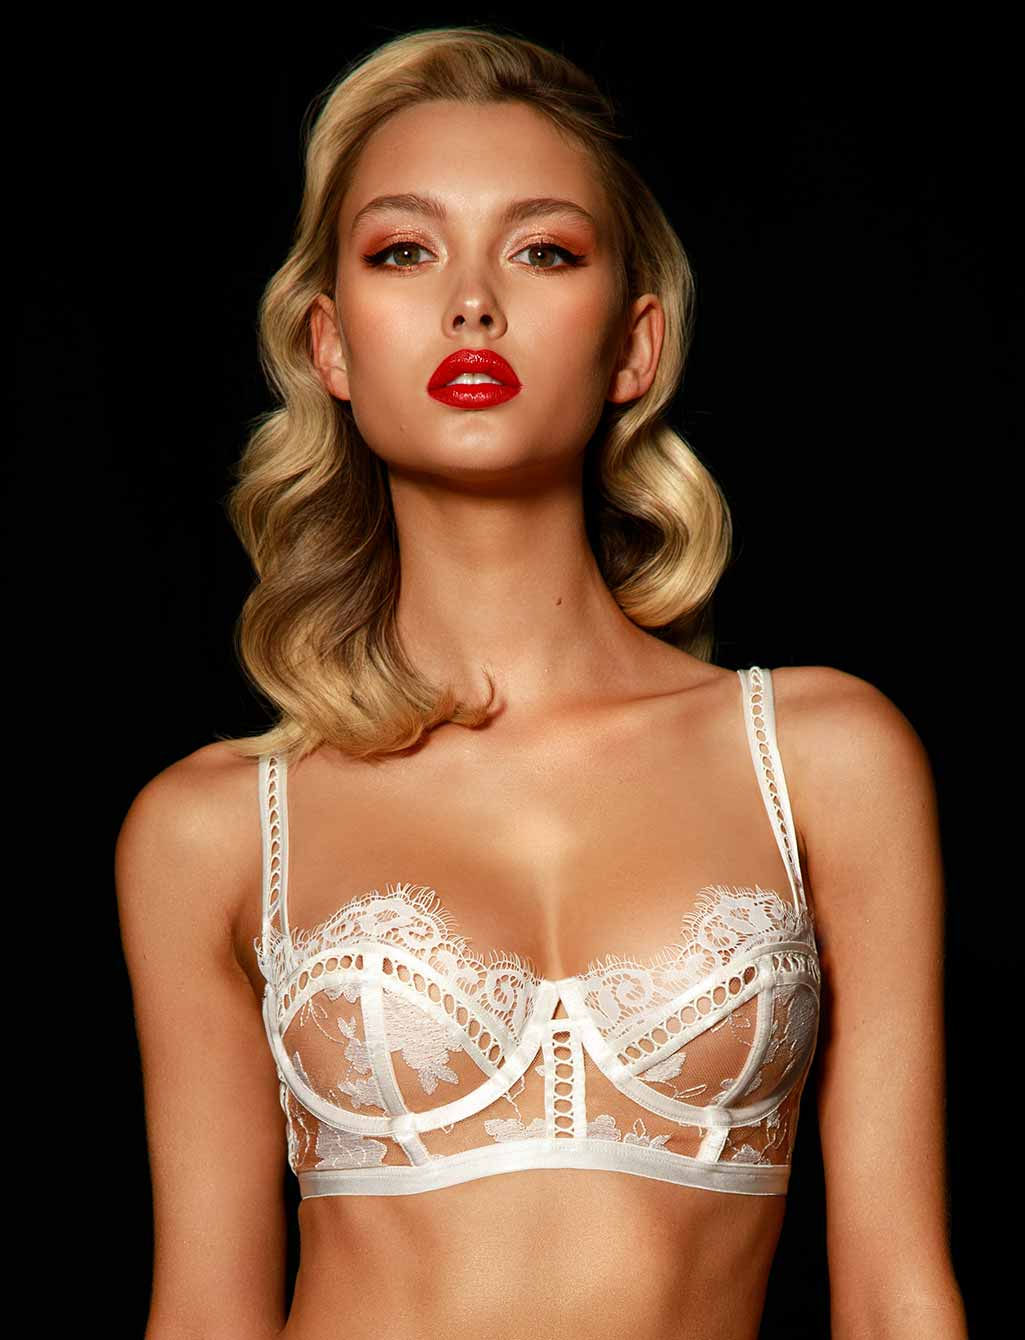 Molly Lace Ivory Bridal Underwire Bra | Shop Lingerie - Honey Birdette